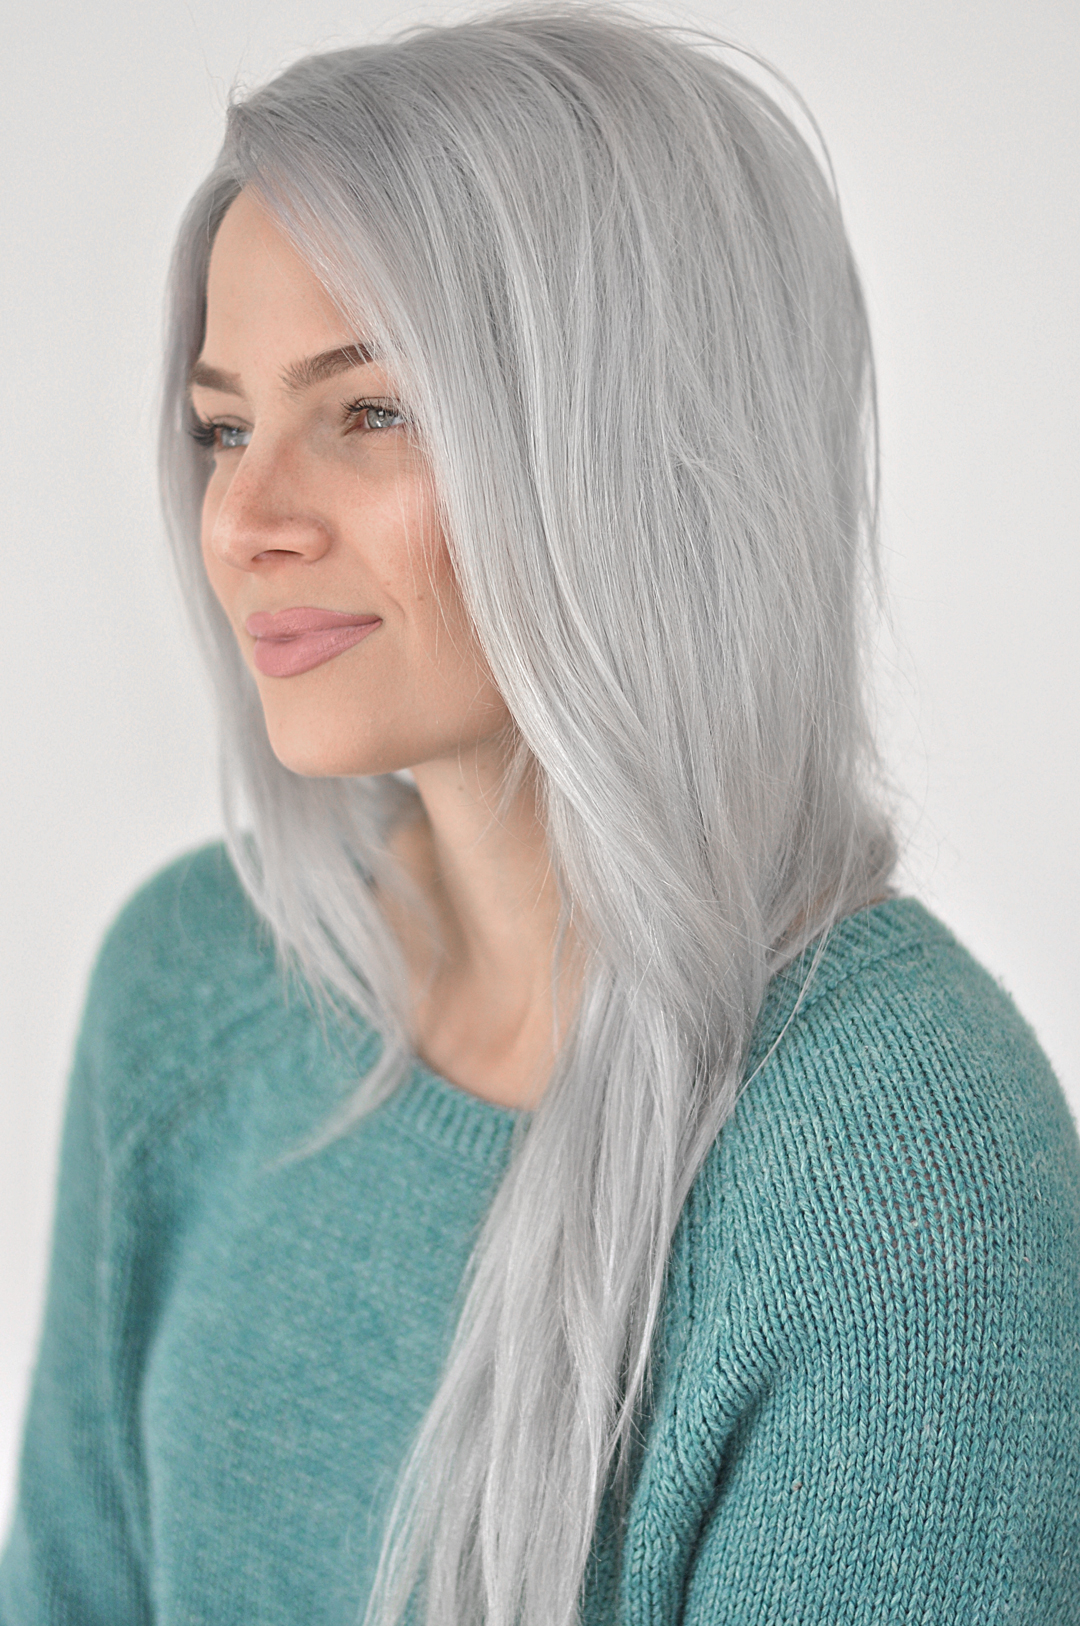 Want perfect silver hair but without all the upkeep? This review and tutorial will teach you exactly how to achieve that with oVertone pastel silver.